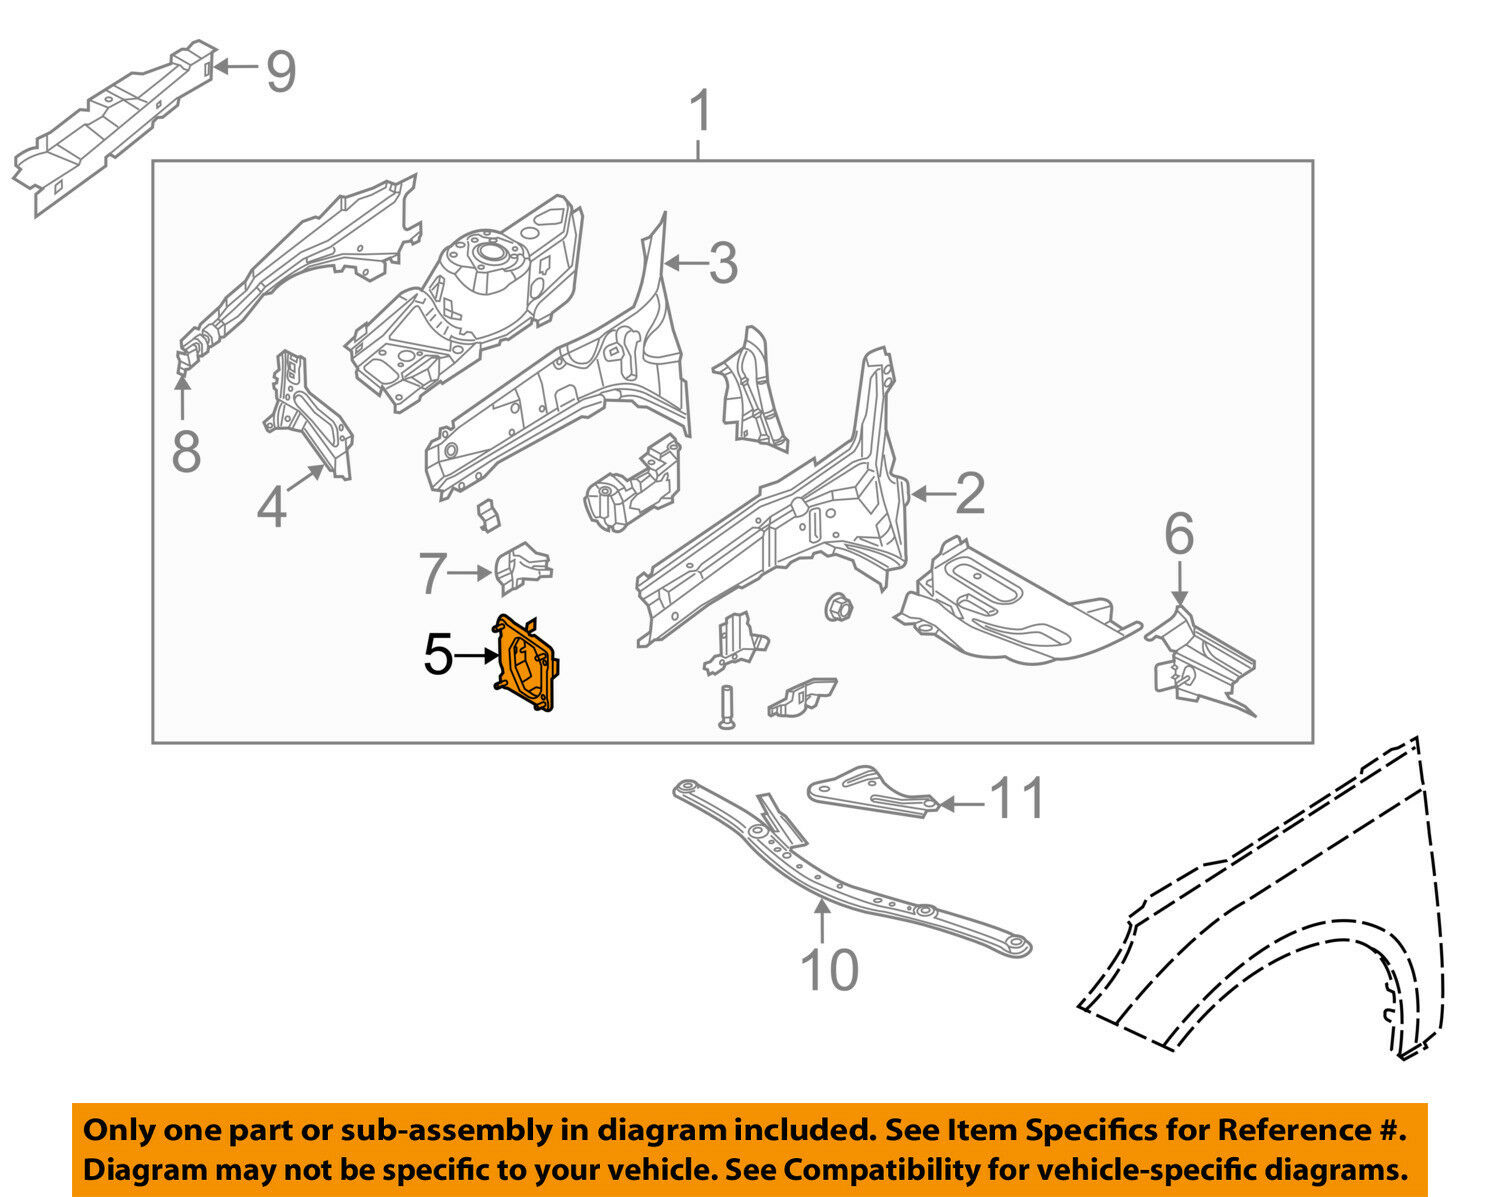 2012 Ford Focus Parts Diagram In Addition 2012 Ford Focus Front Bumper